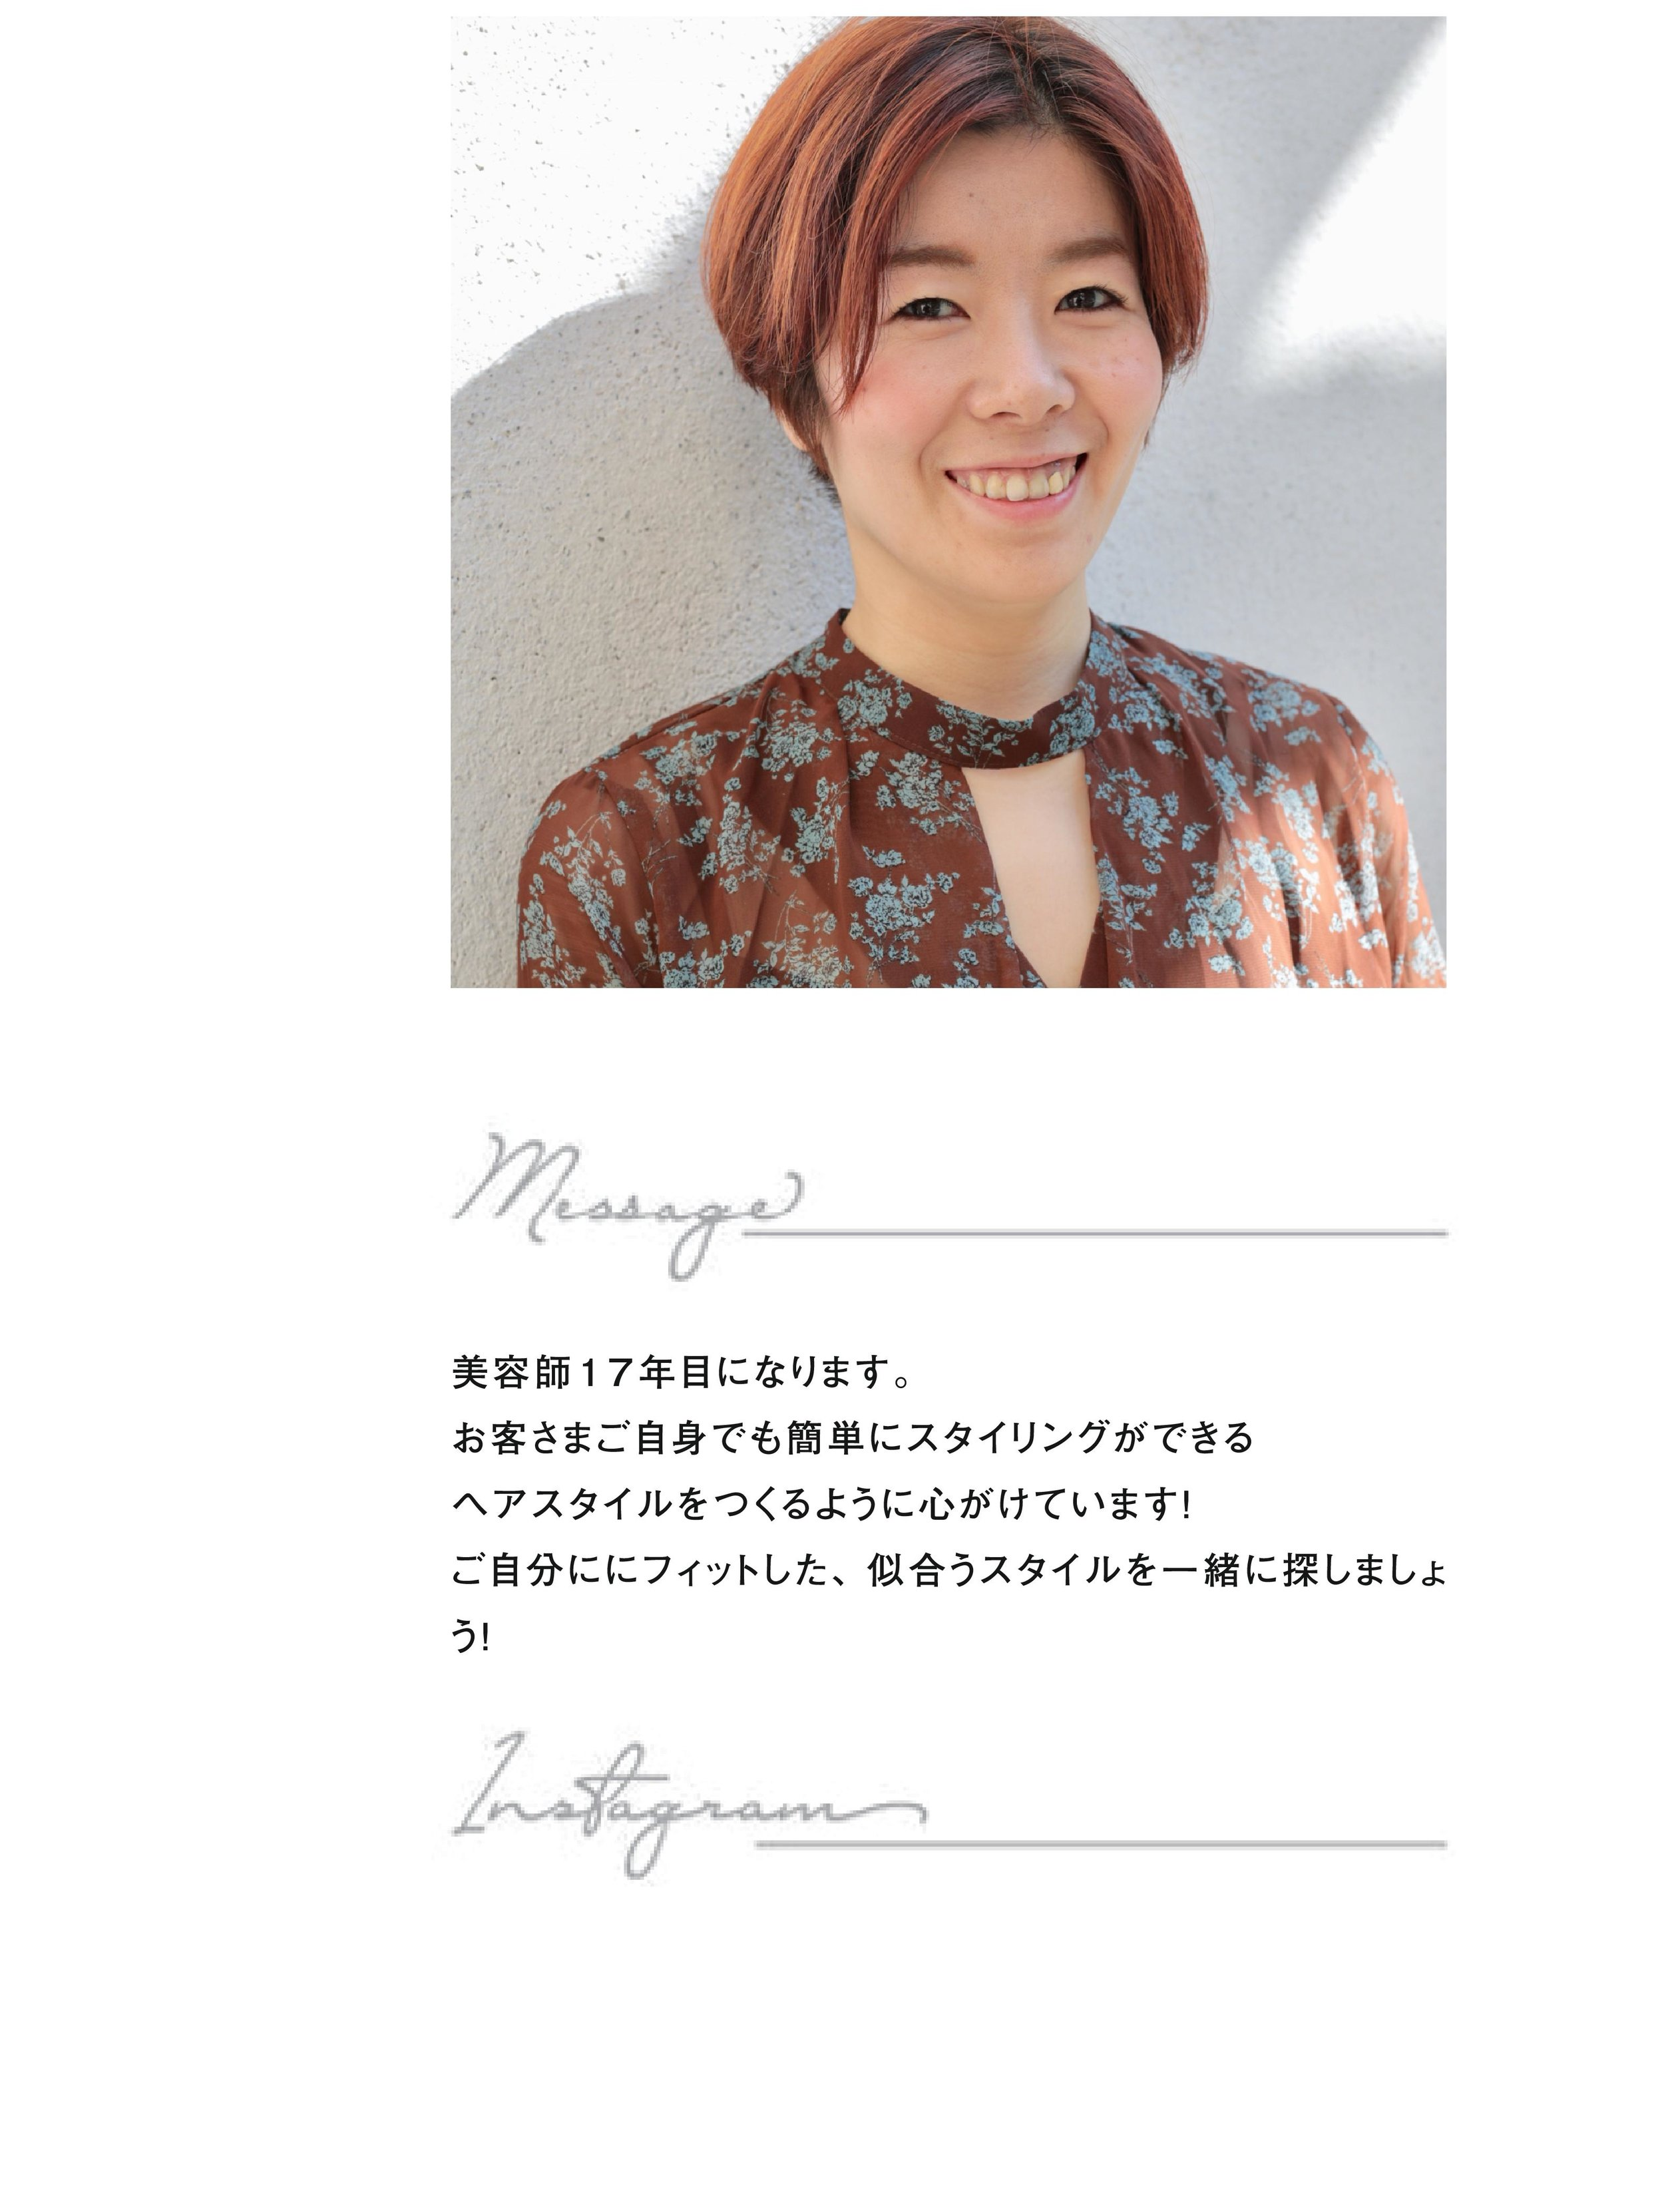 photo template-page-001.jpg